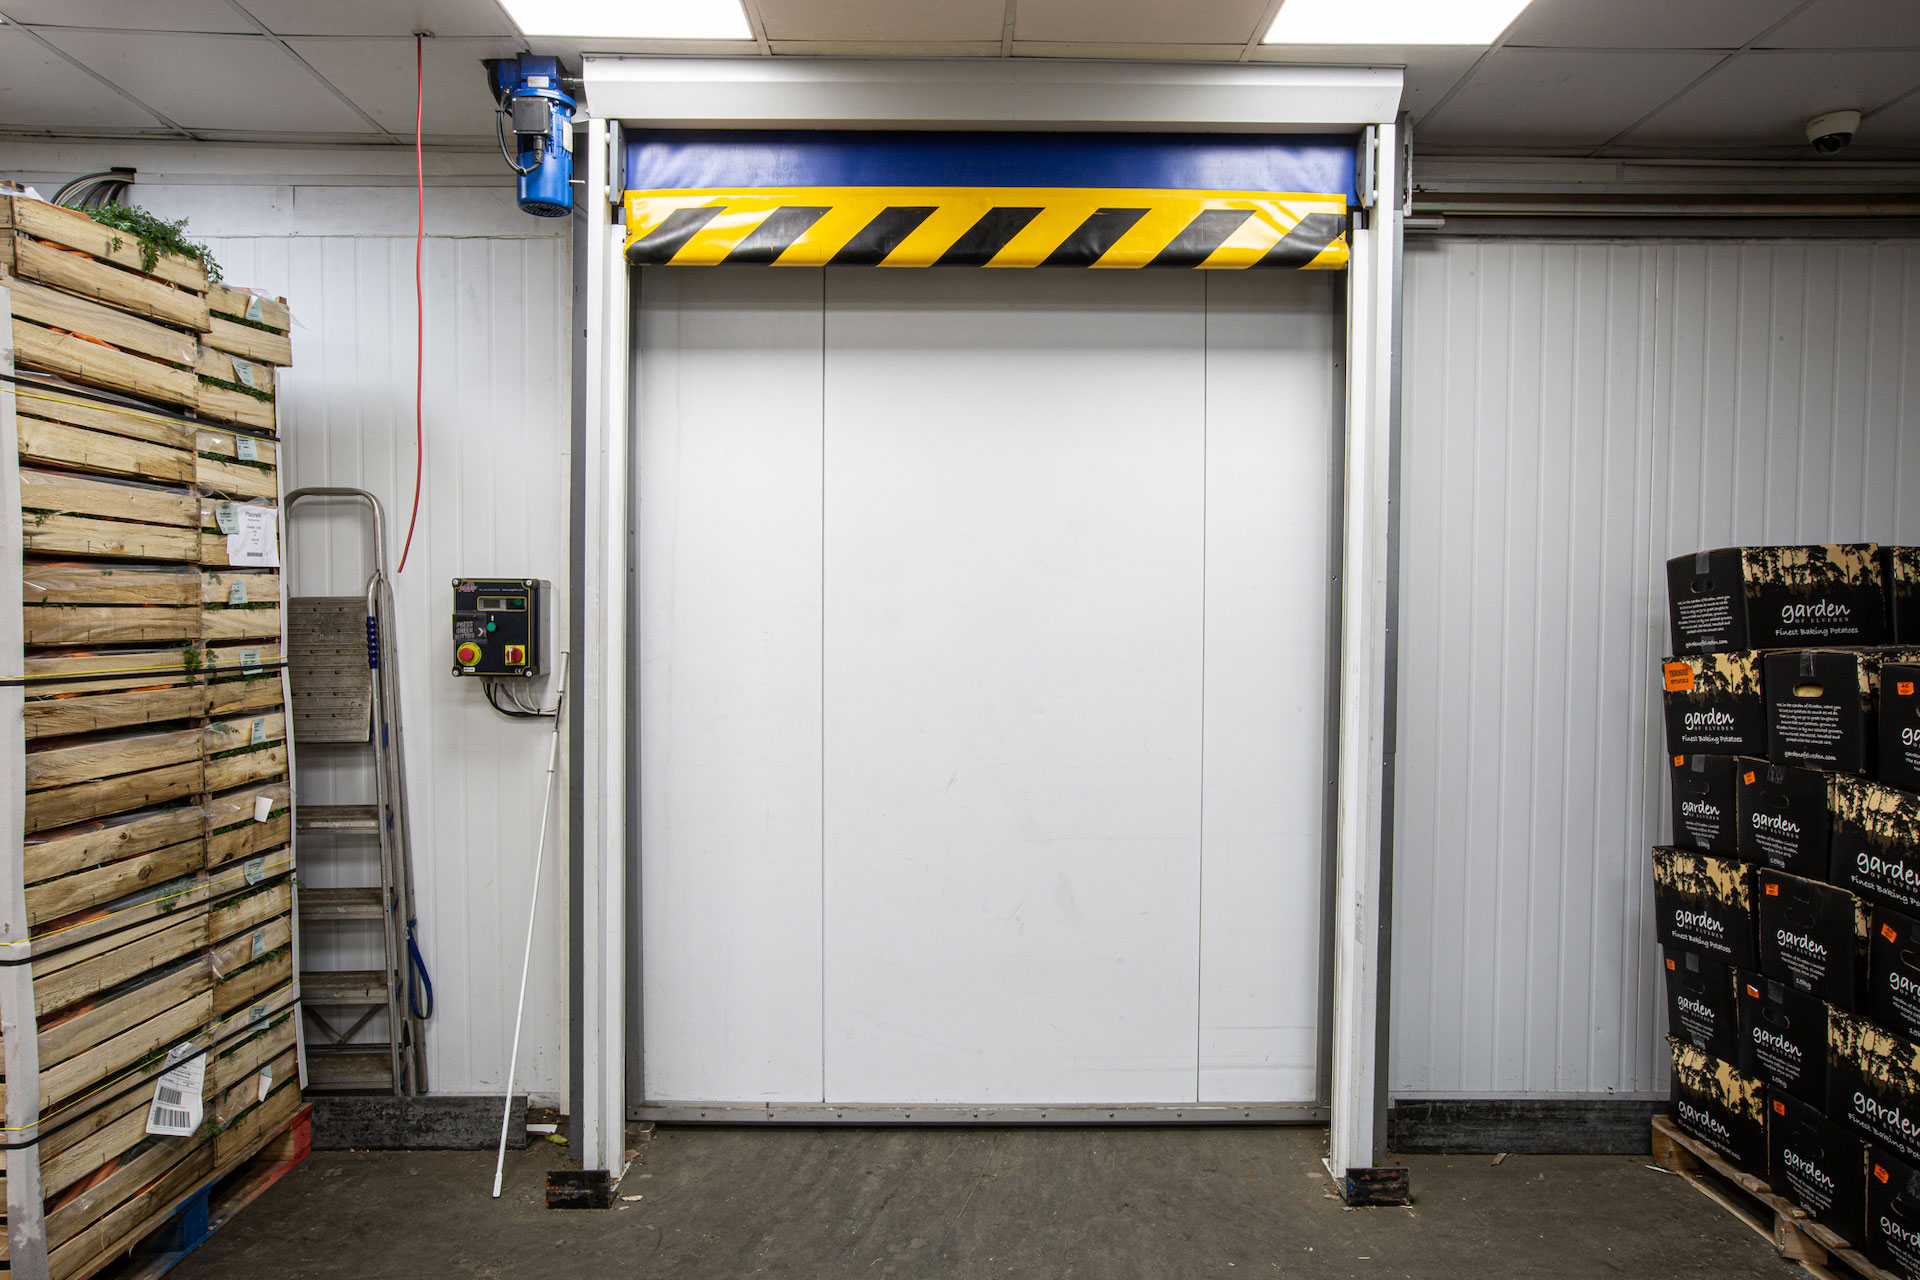 s-thorogood-cold-room-arctic-services-installation-arctic-services